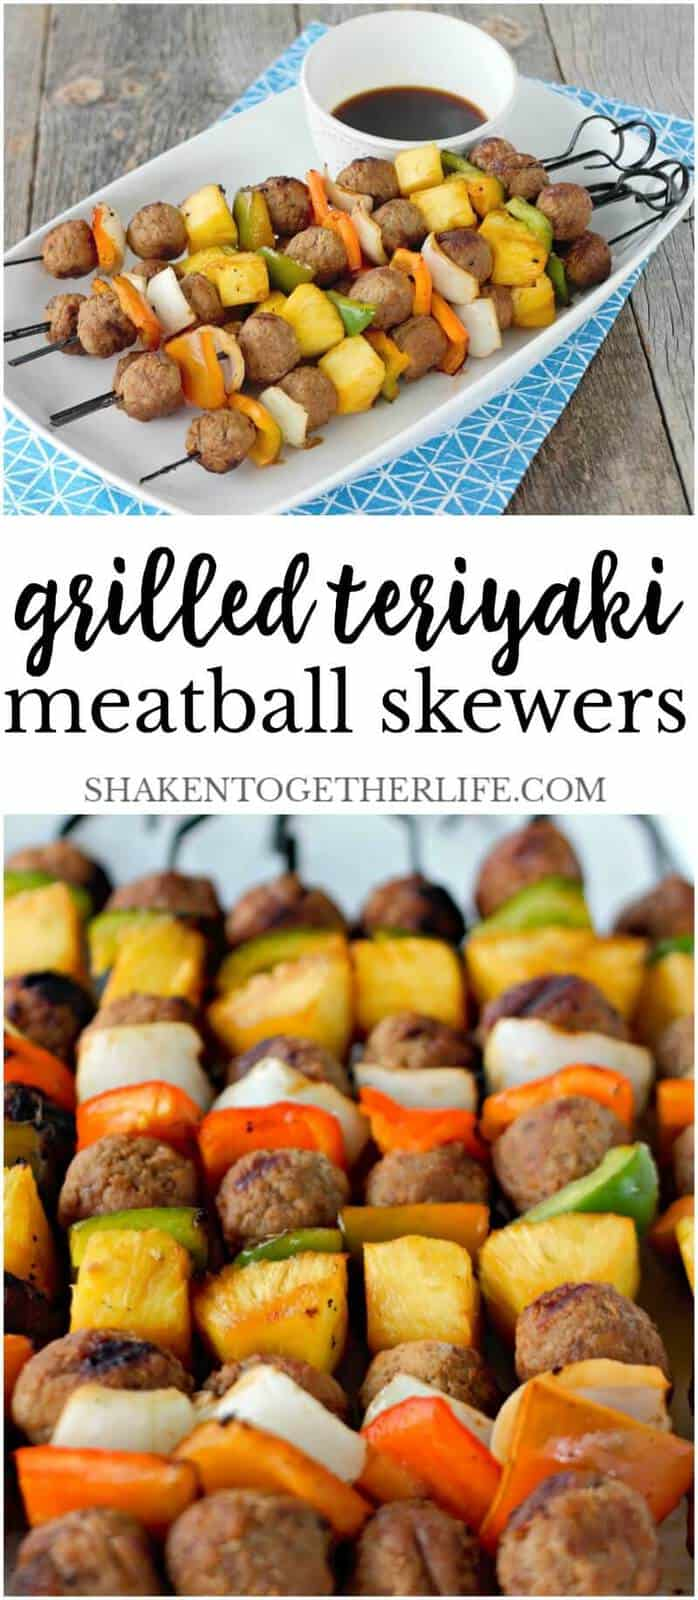 Grilled Teriyaki Meatball Skewers only have 5 ingredients, minimal prep and grill to perfection in minutes! They are loaded with meatballs, pineapple and veggies all glazed with teriyaki sauce - YUM!